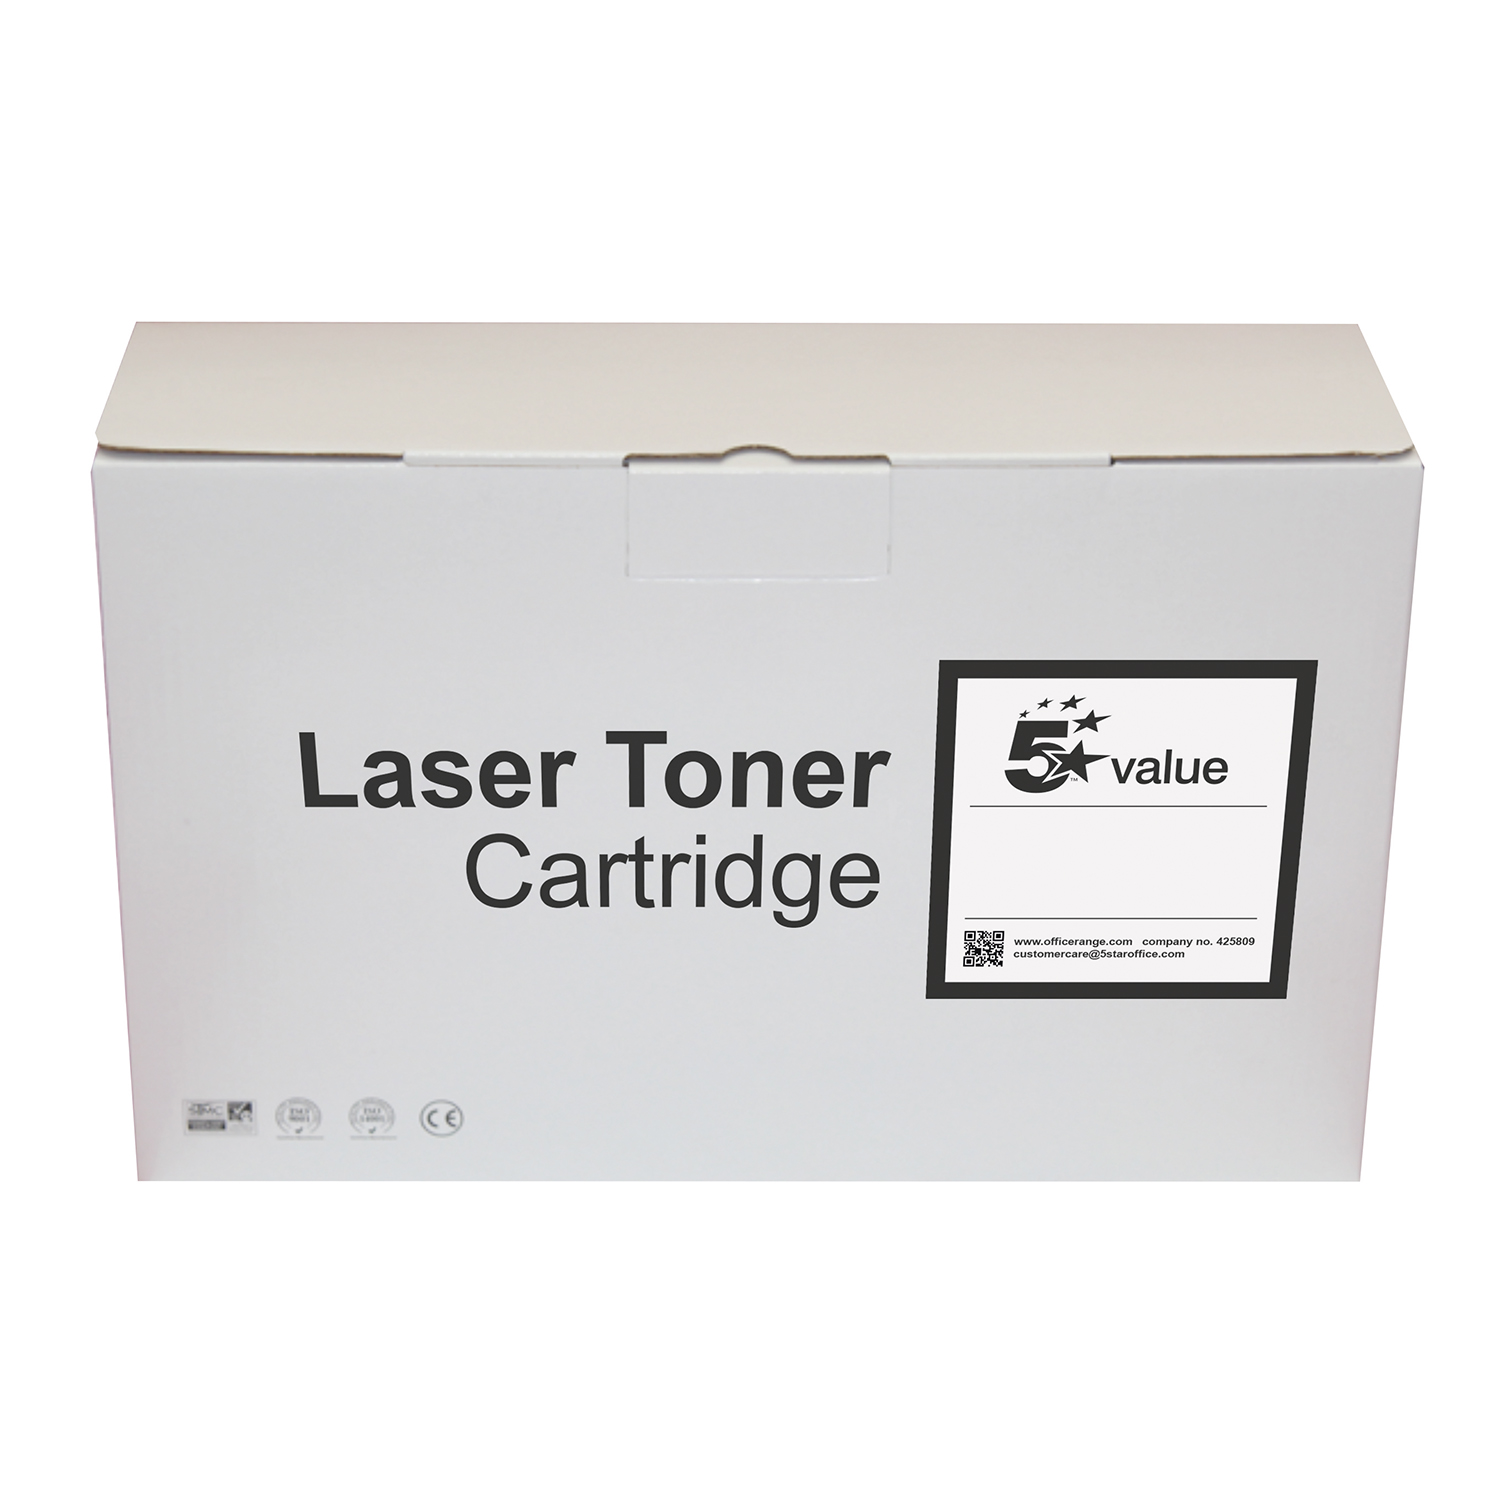 5 Star Value Remanufactured Laser Toner Cartridge Page Life 18000pp Black HP 38A Q1338A Alternative